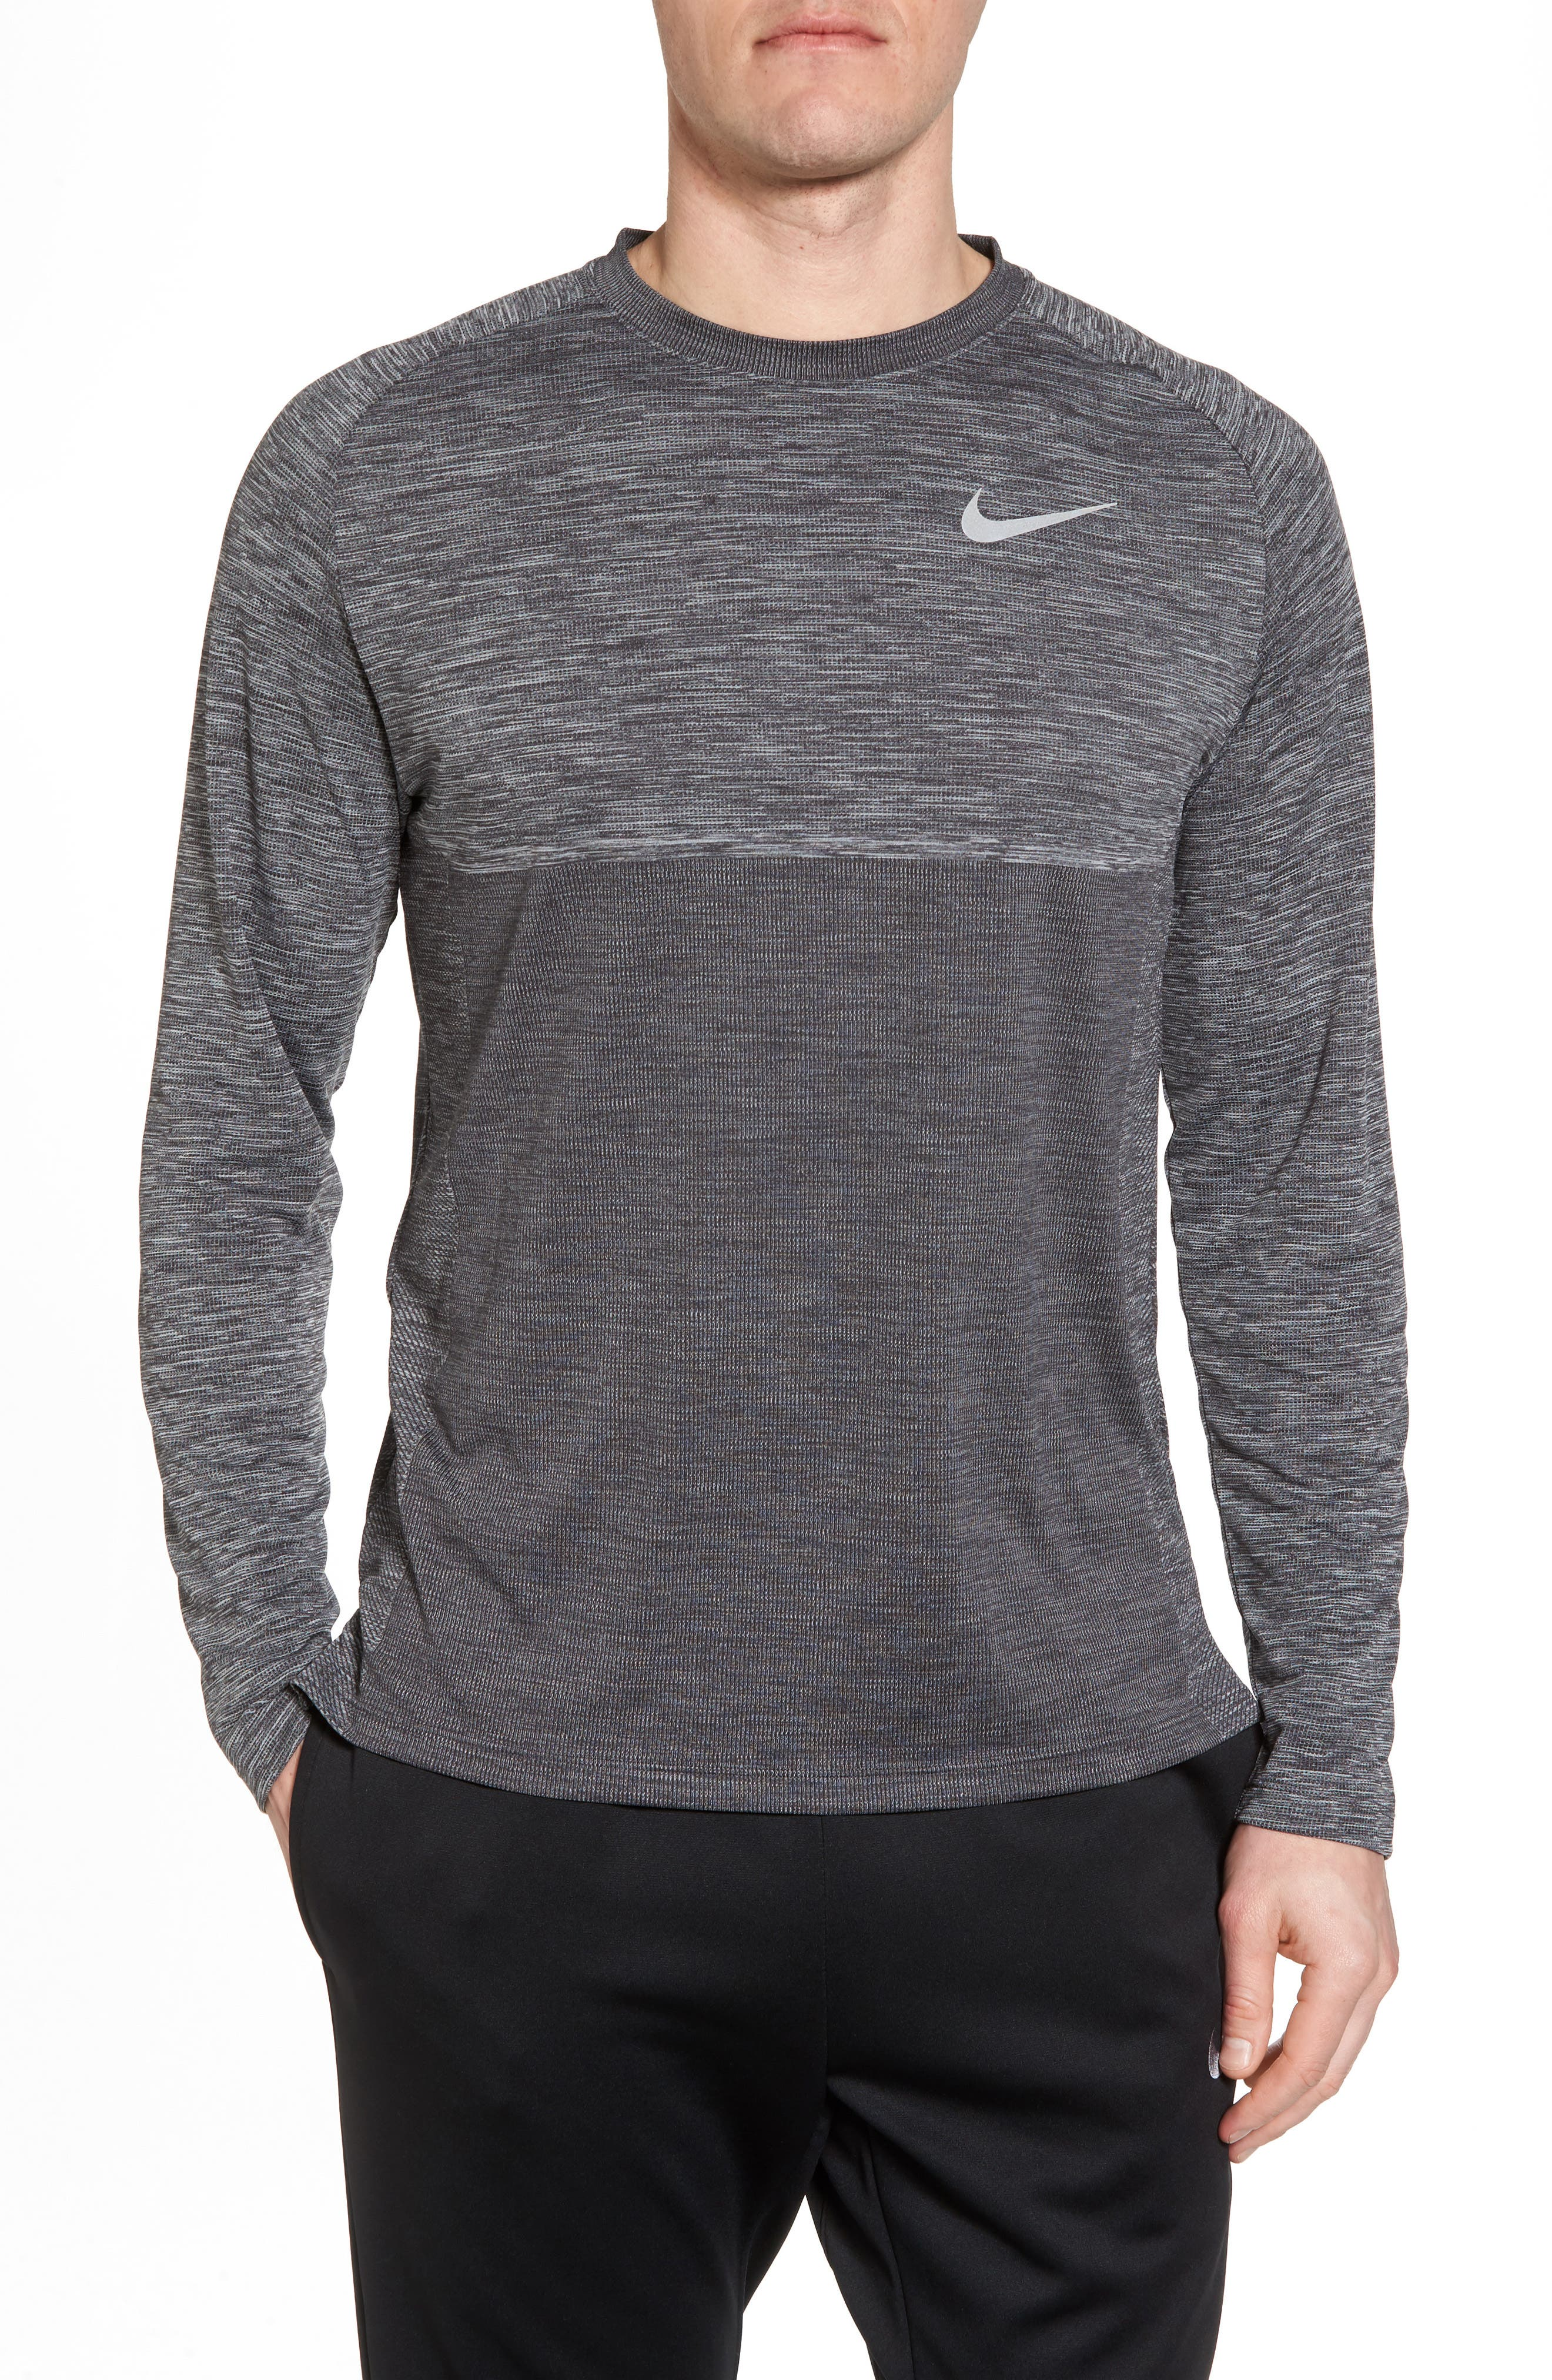 Medalist Running Top,                         Main,                         color, 022